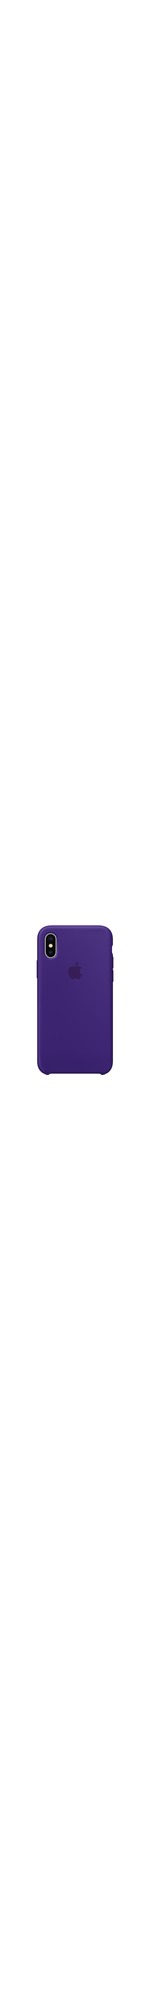 Apple Case for Apple iPhone X Smartphone - Ultra Violet